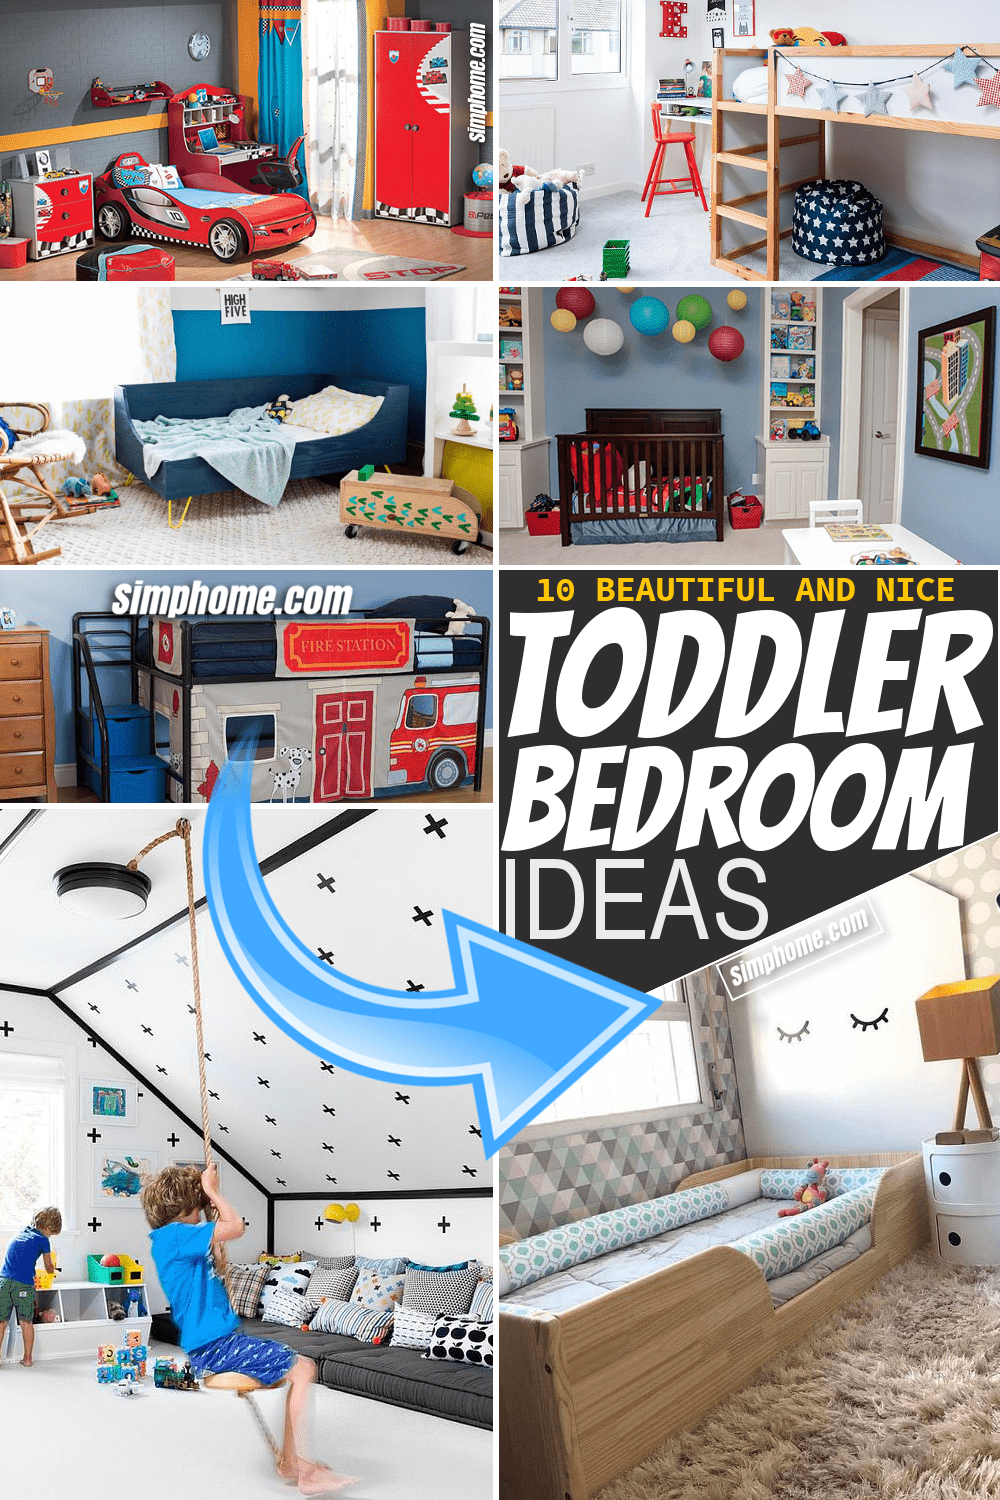 Simphome.com 10 Toddler Bedroom Ideas Featured Pinterest Image